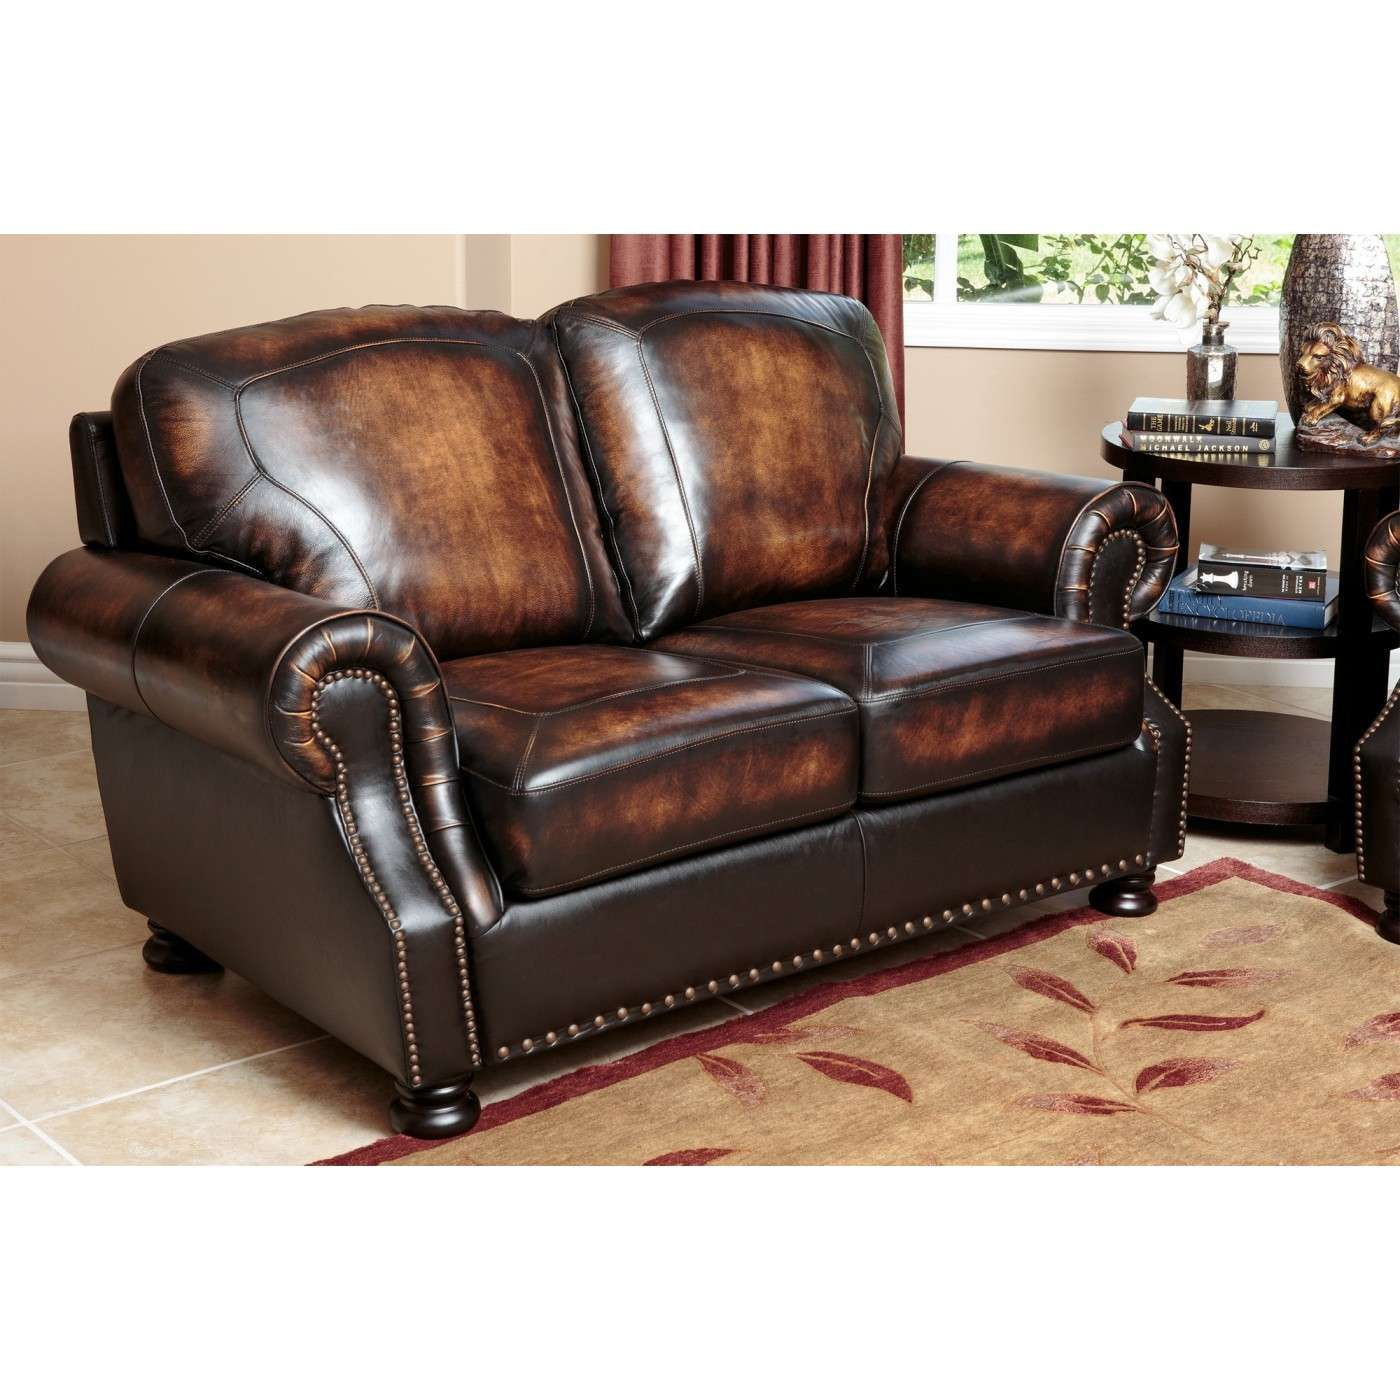 2293 Best Images About Leather Sofas And Living Room: Sienna Brown Top Grain Leather Loveseat